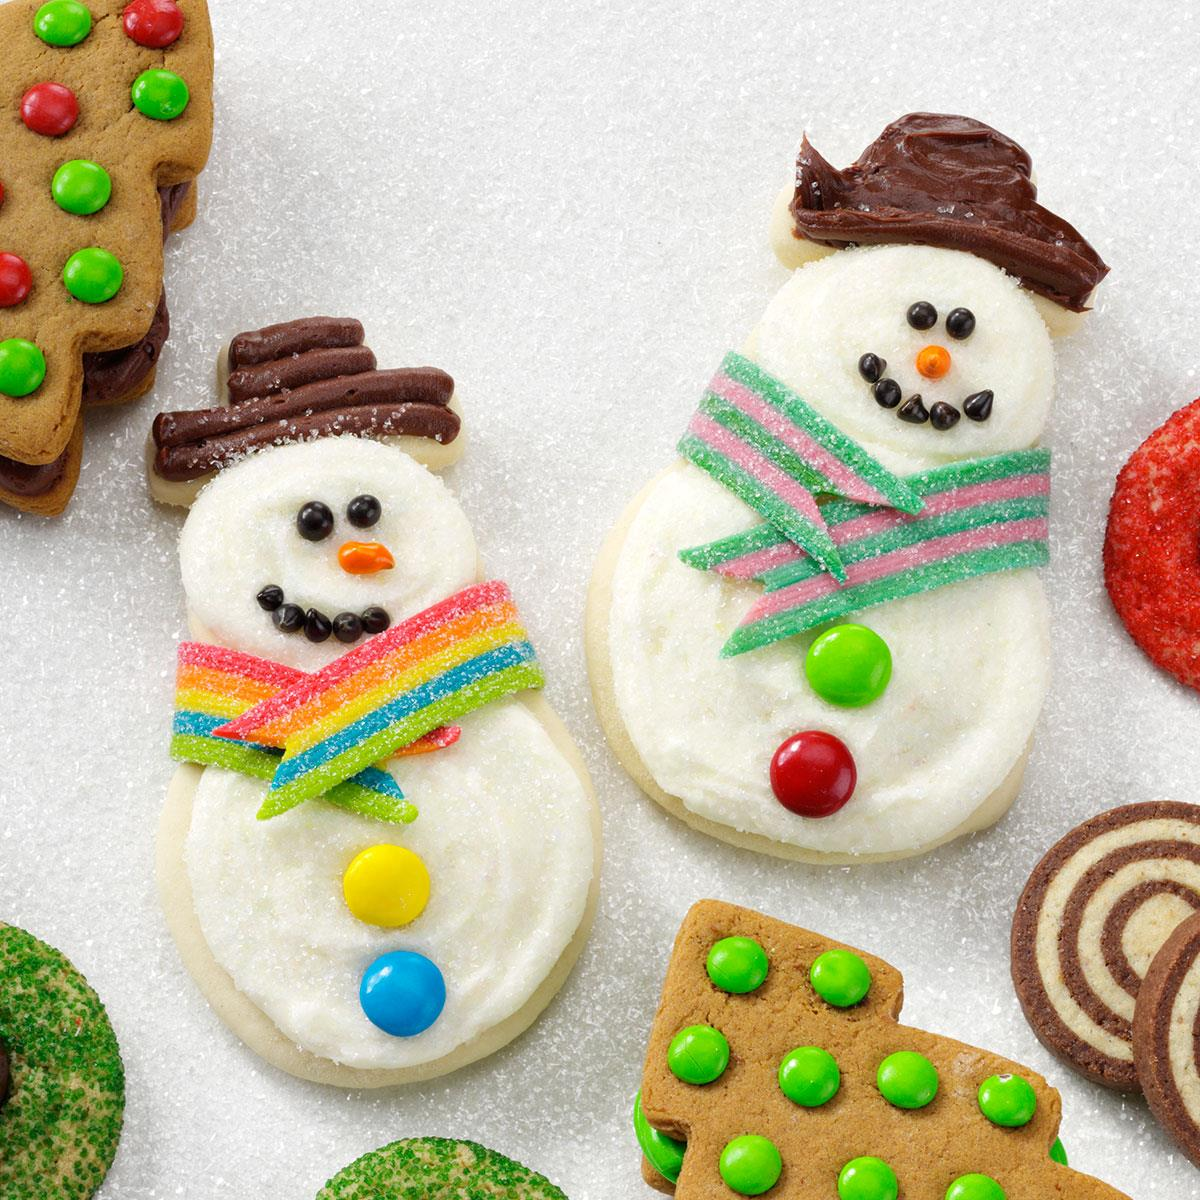 Snowman Butter Cutouts Recipe | Taste of Home